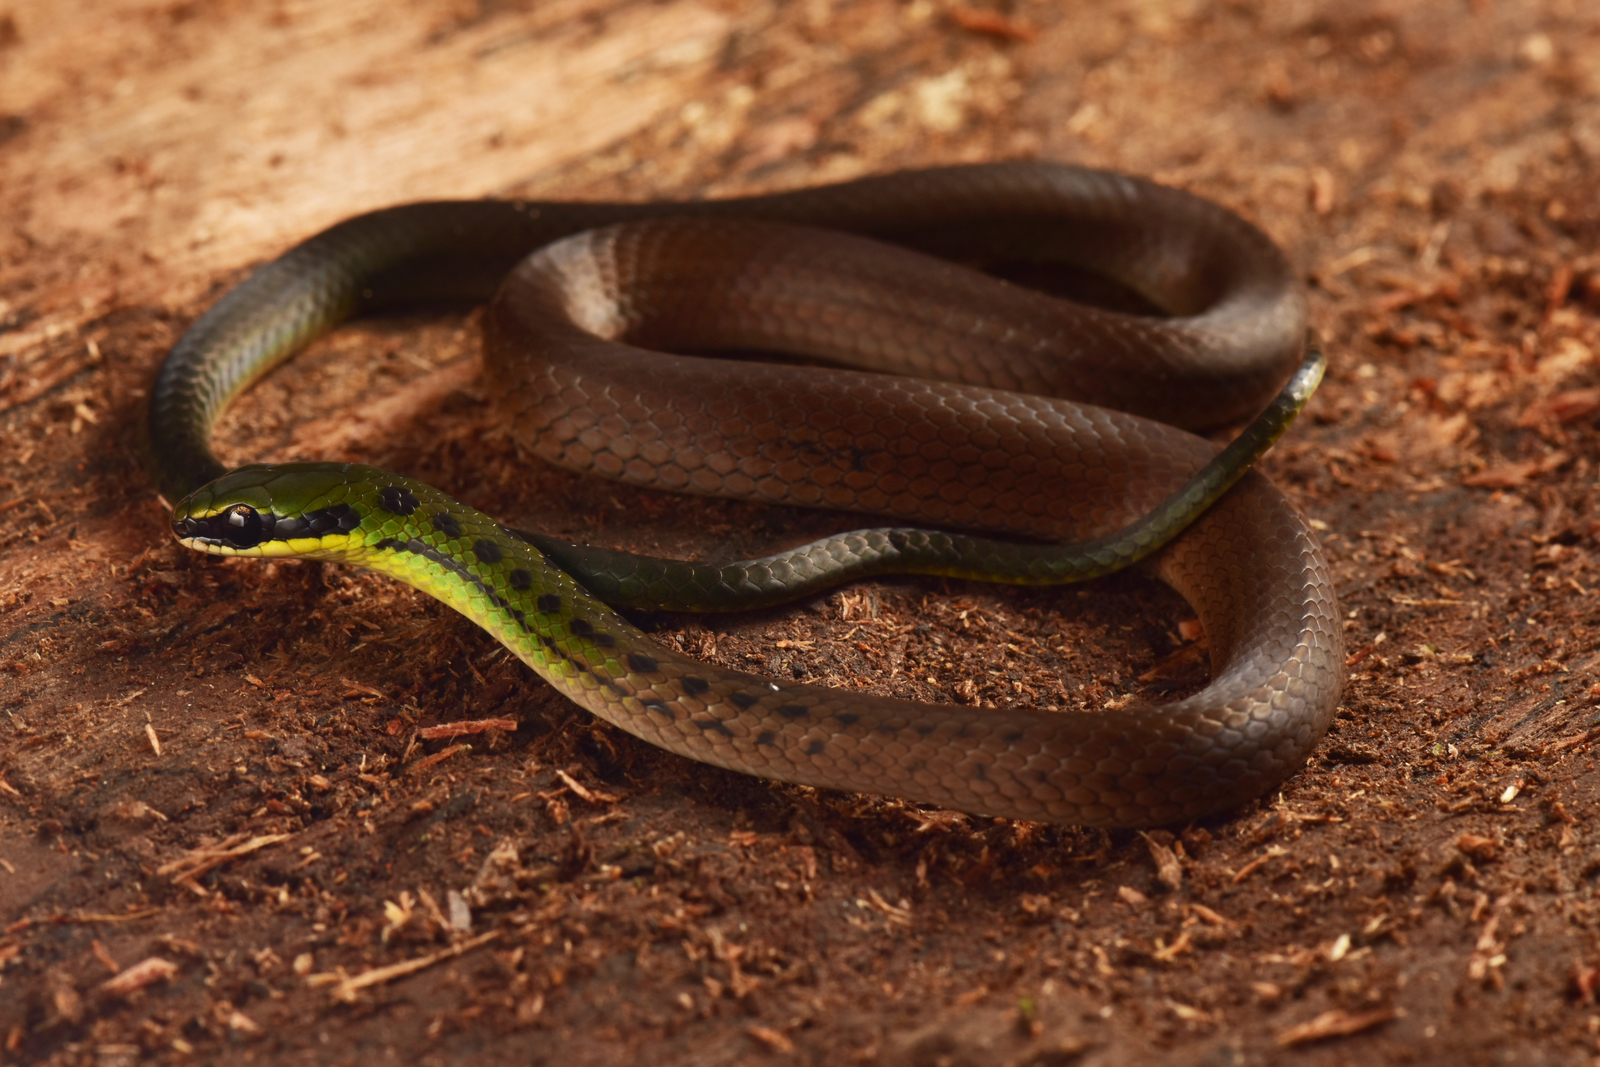 "The Bolivian flag snake (Eutrachelophis sp. nov.) is active primarily during the day and was found ""in the thick undergrowth of stunted elfin forest along the crest of the mountain at the highest elevation surveyed."" Image © Trond Larsen."